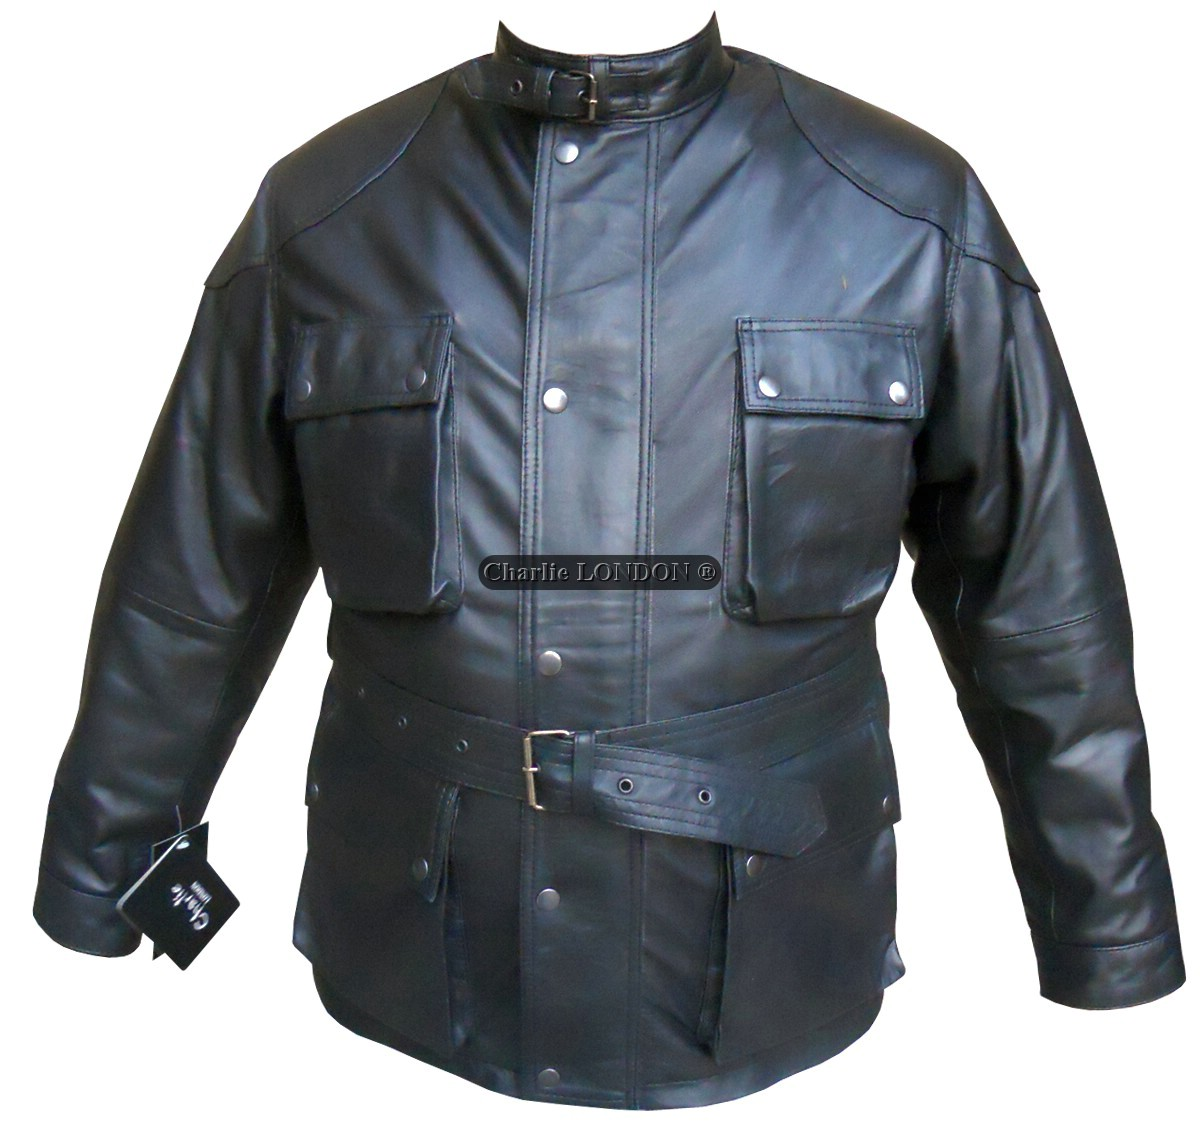 Charlie LONDON Thunder Leather Jacket